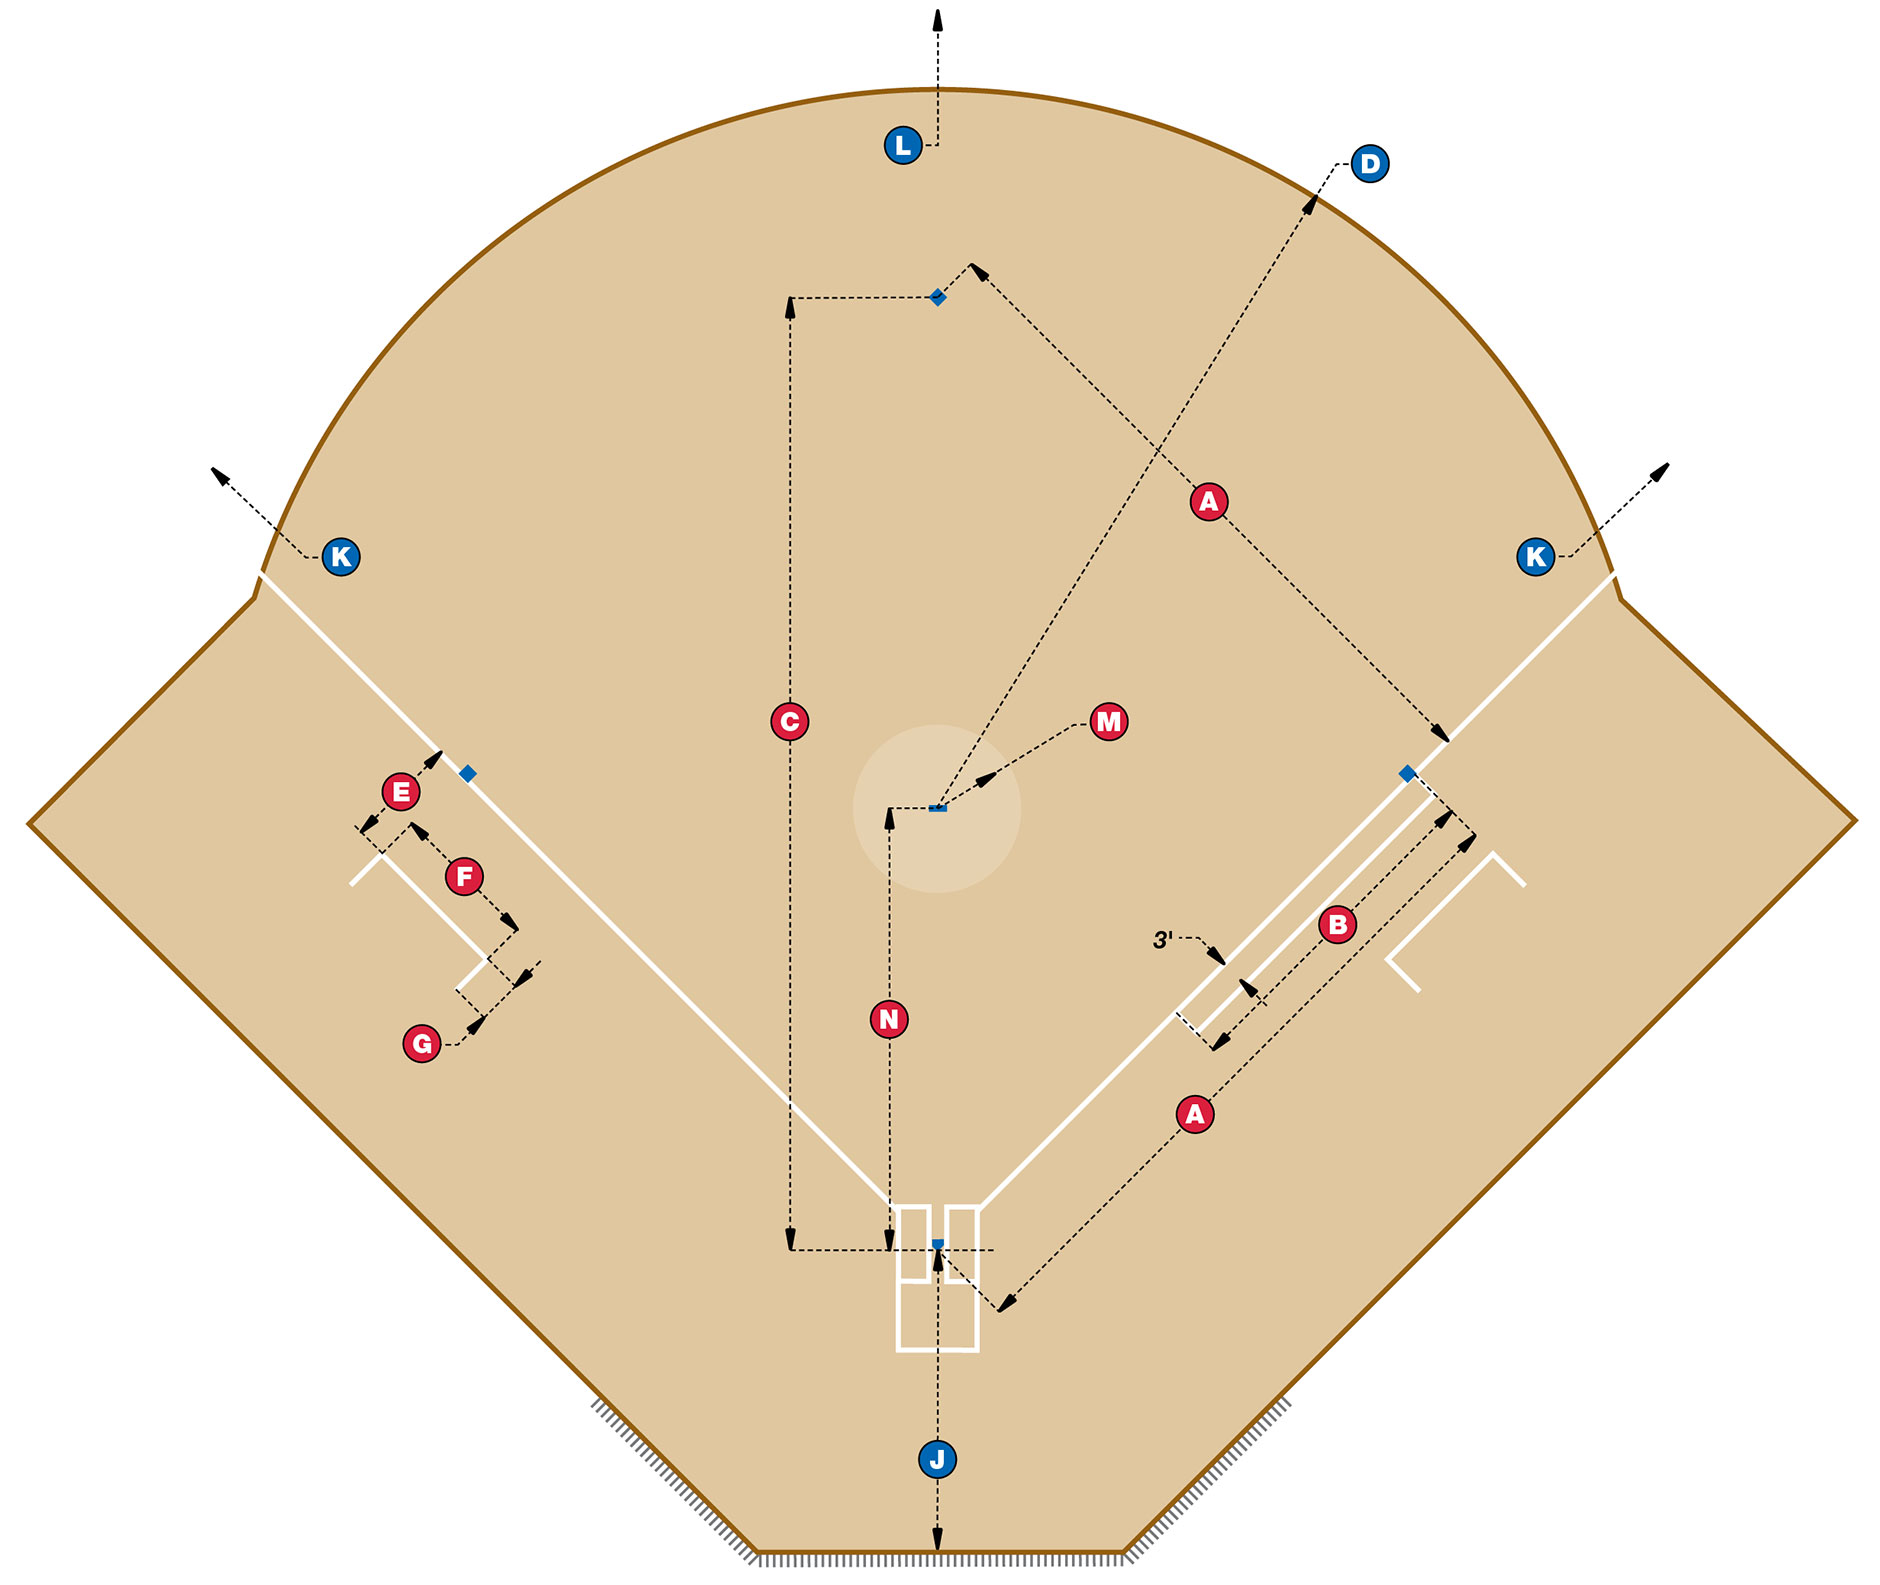 [Diagram of softball field dimensions]